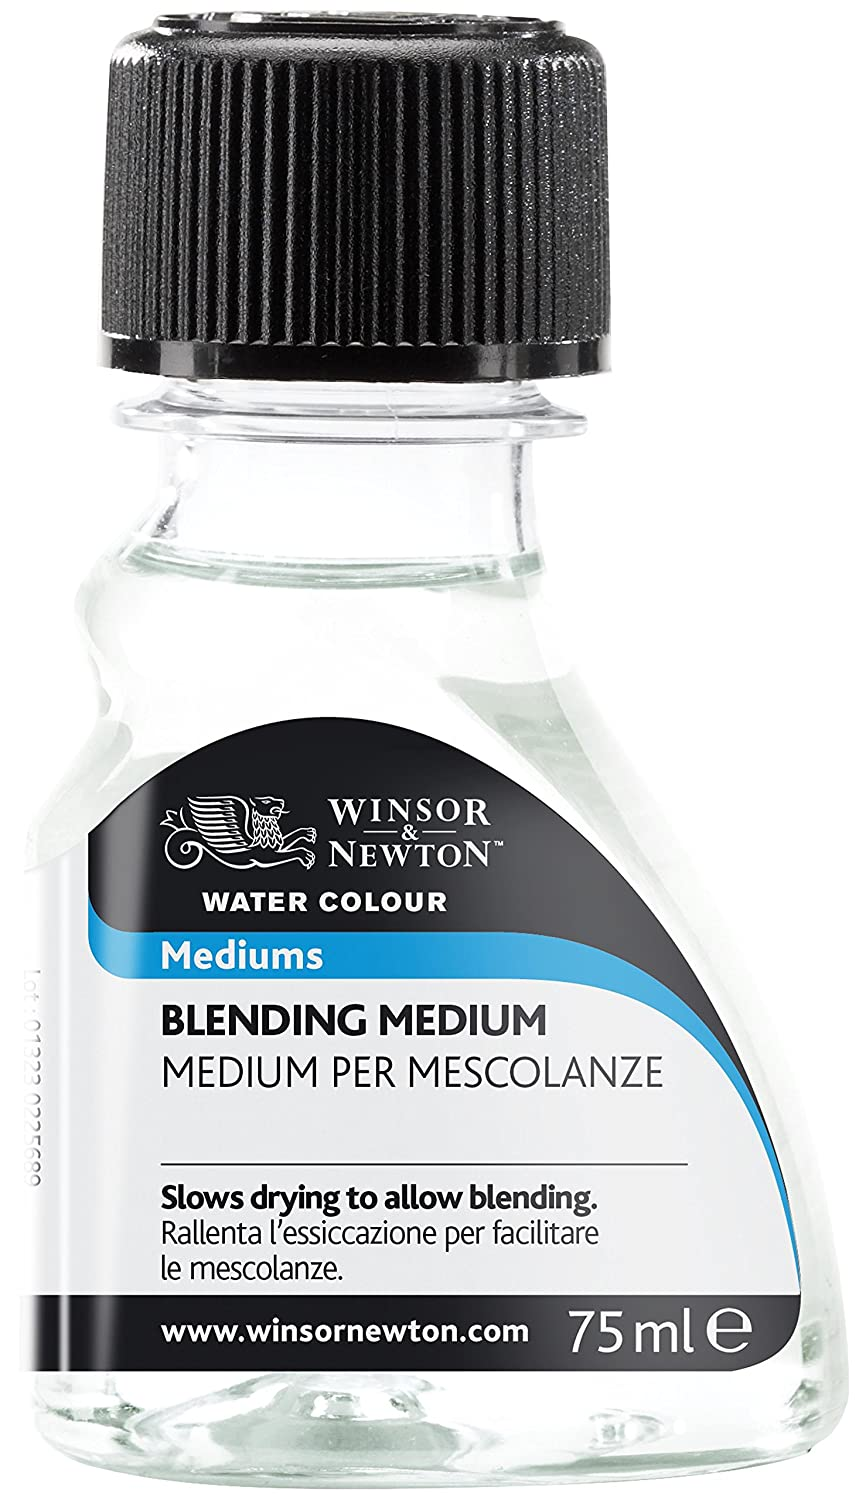 Winsor & Newton Water Color Blending Medium, 75ml